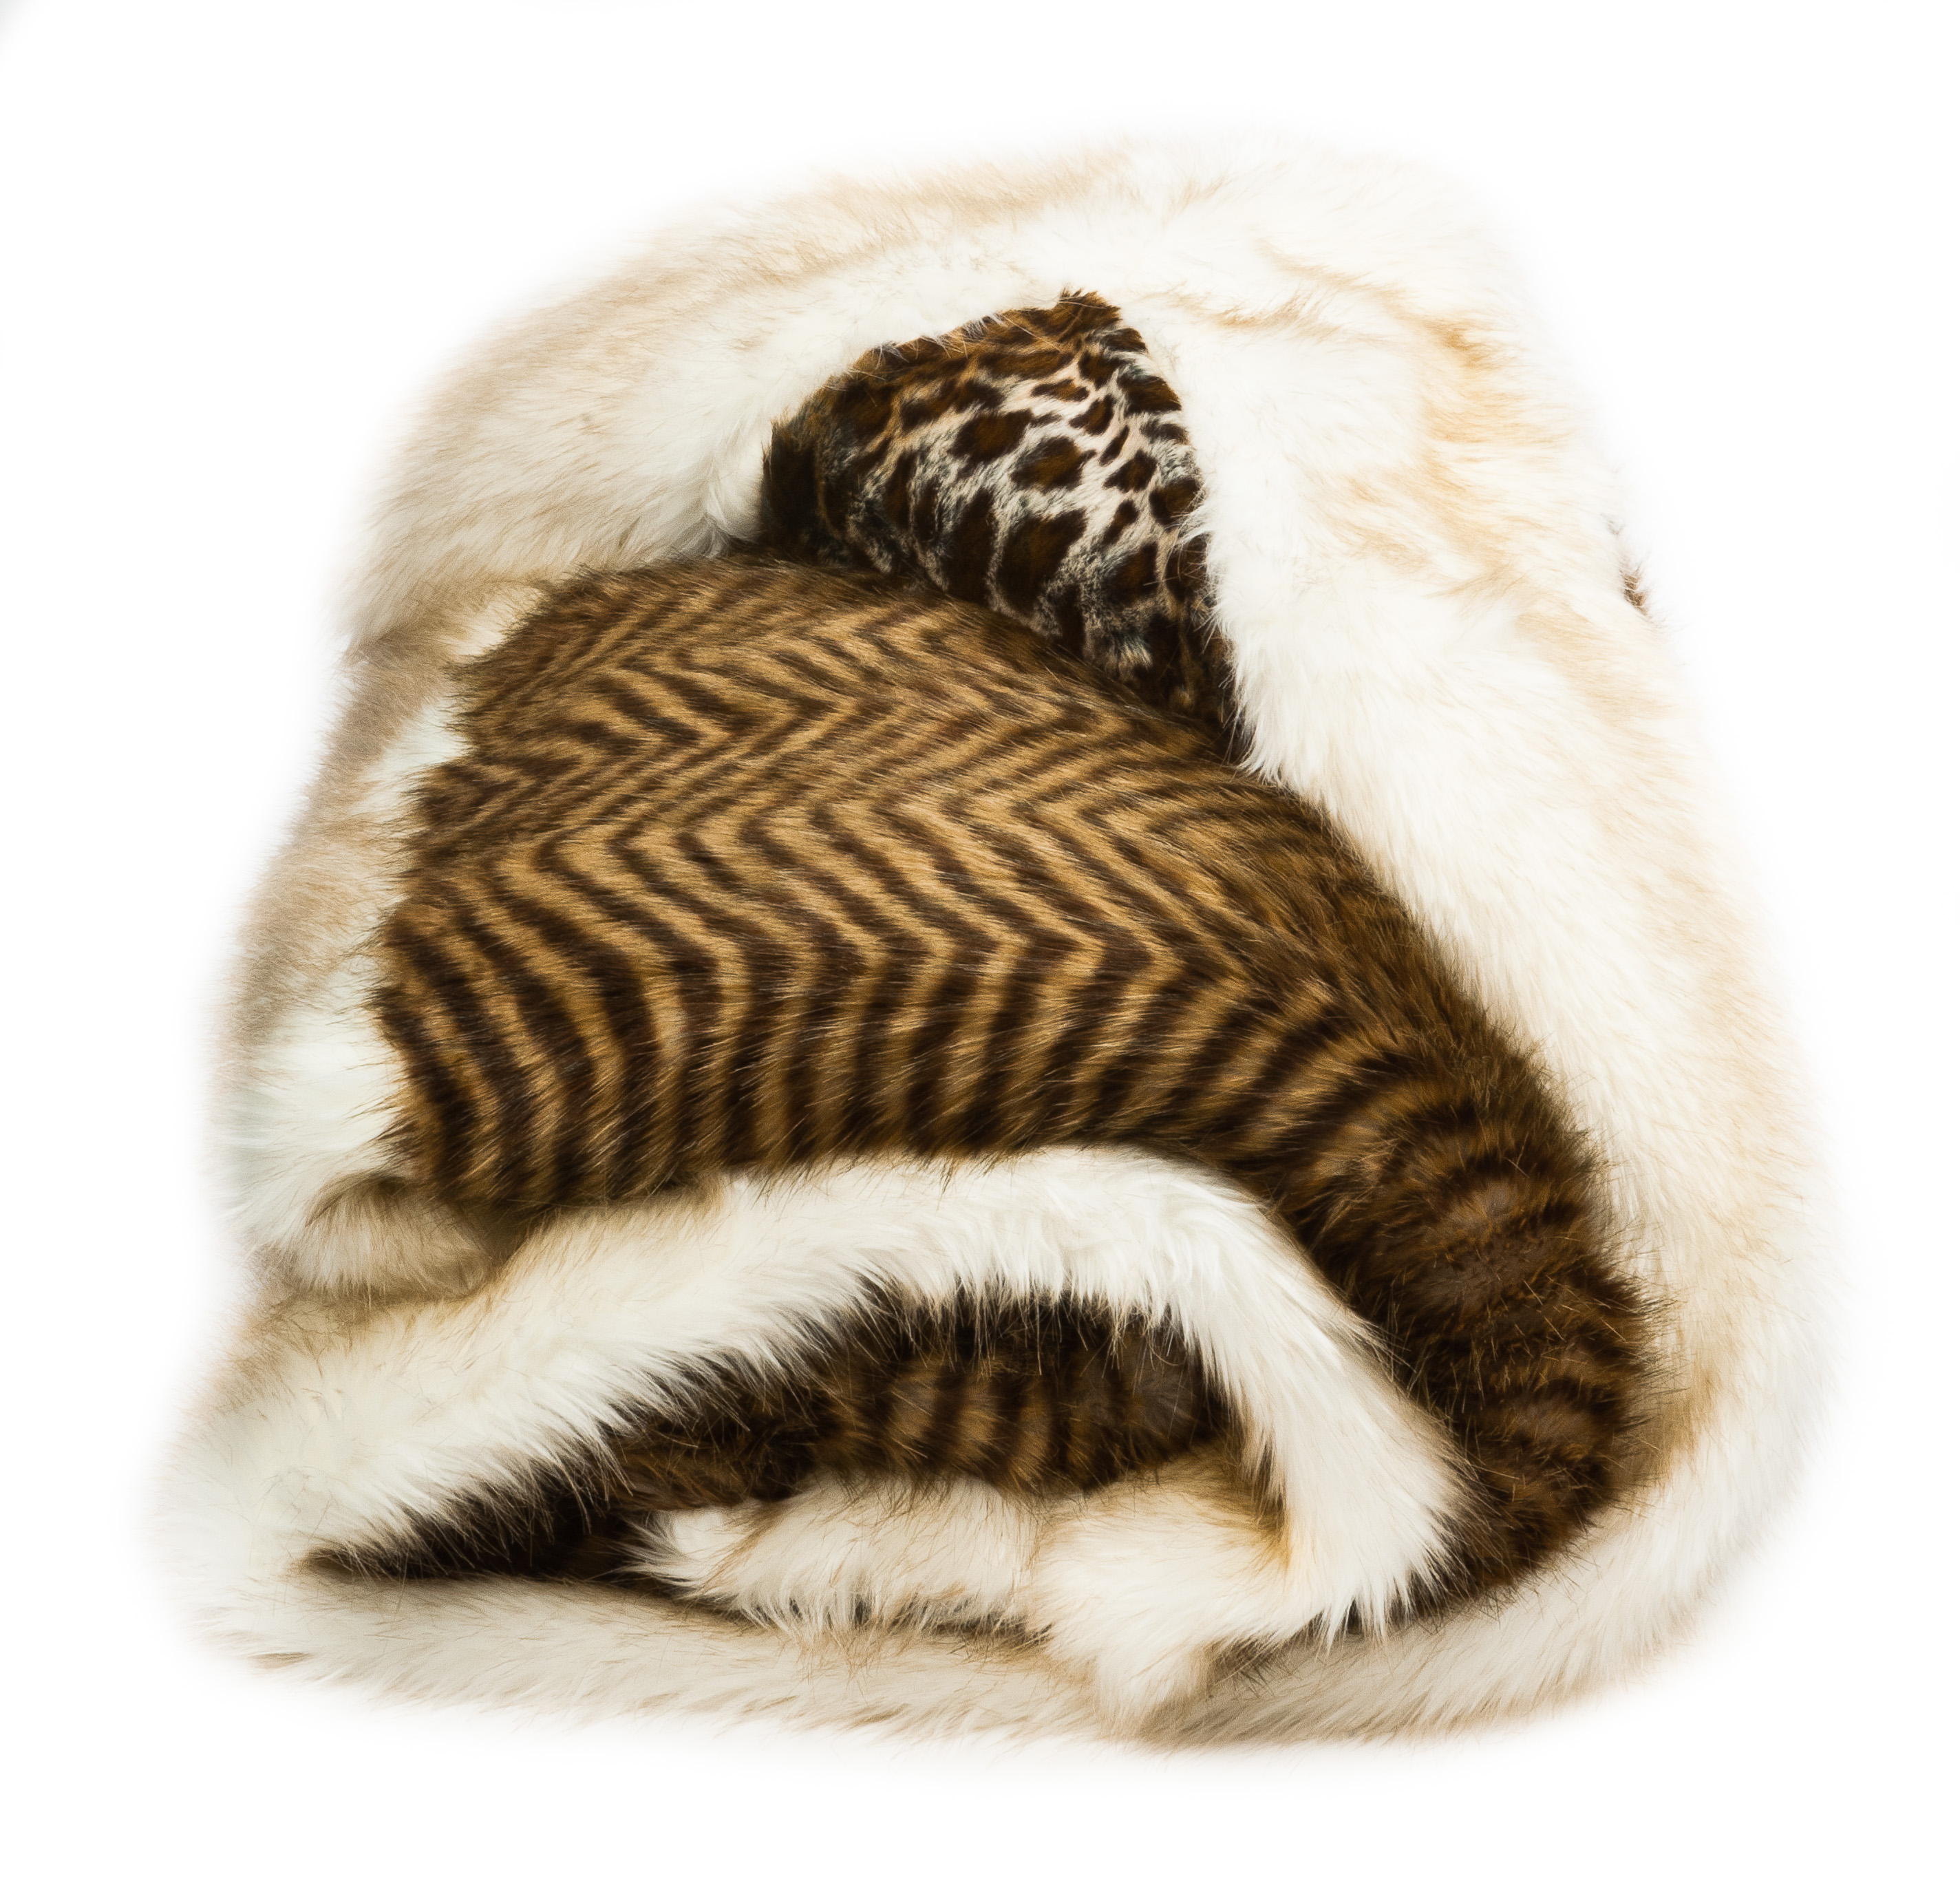 Faux Sheepskin Throw Chasing Luxury In Fashionable Look